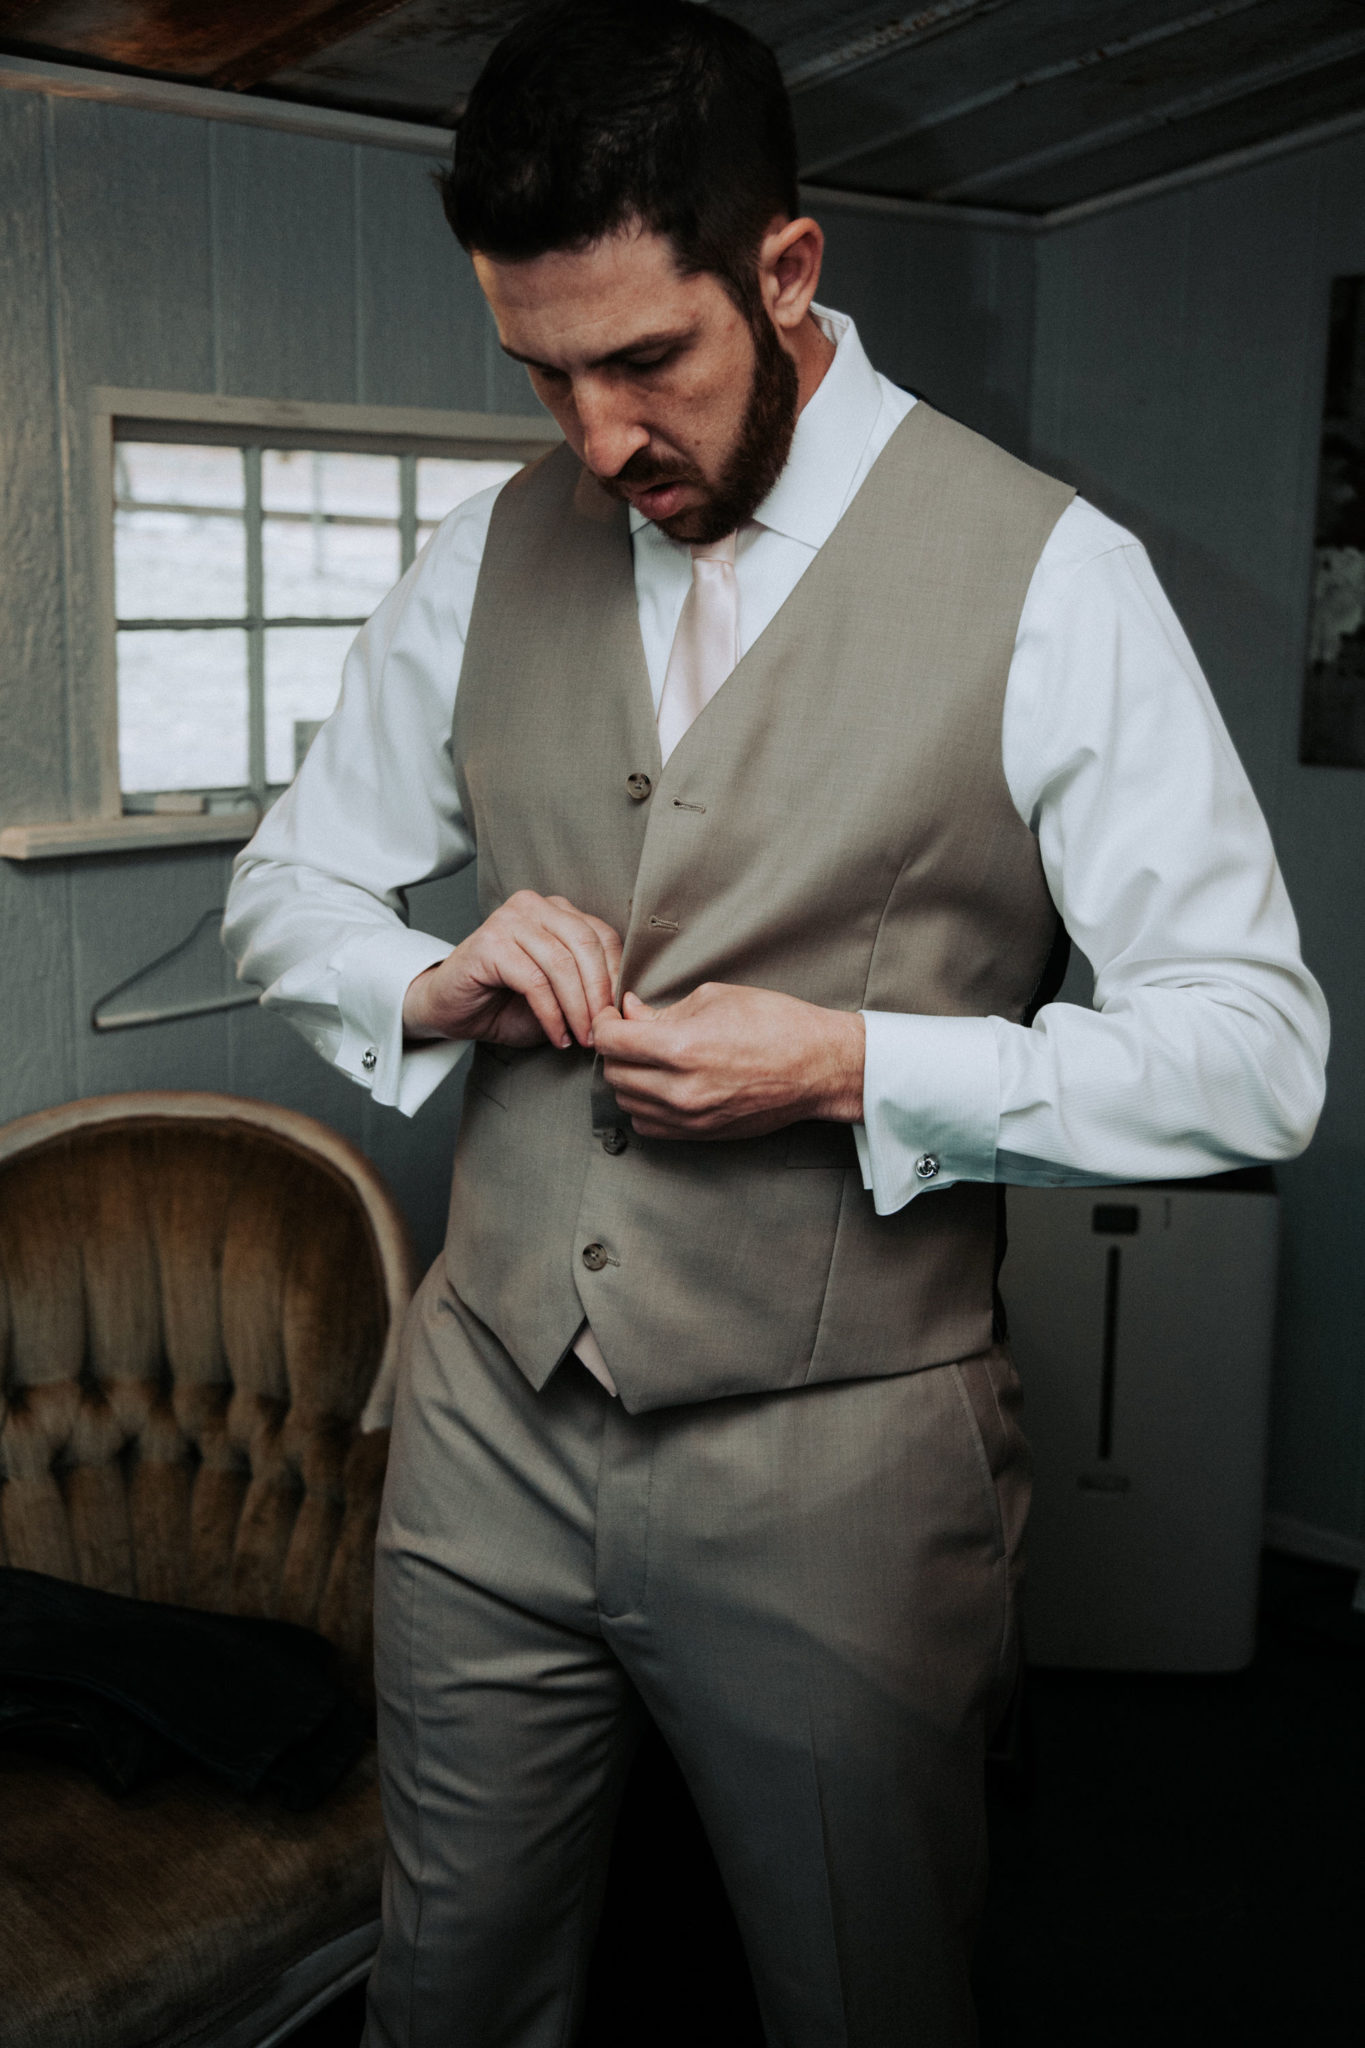 A shot of the groom getting ready at Bridle Oaks.